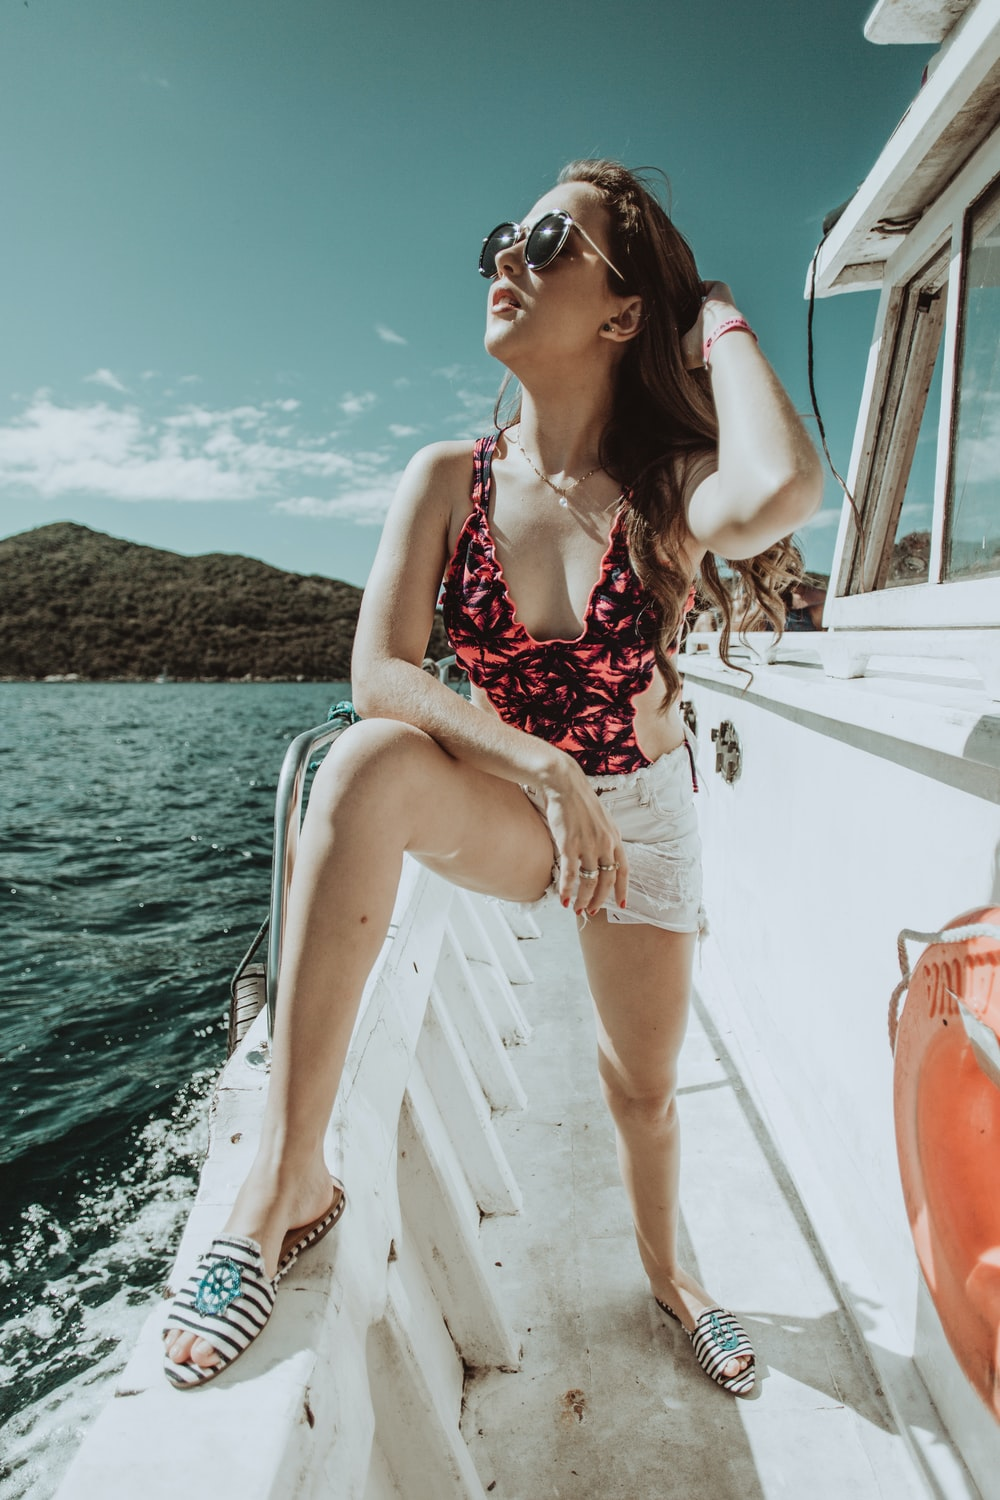 woman in red and white floral bikini sitting on white boat during daytime